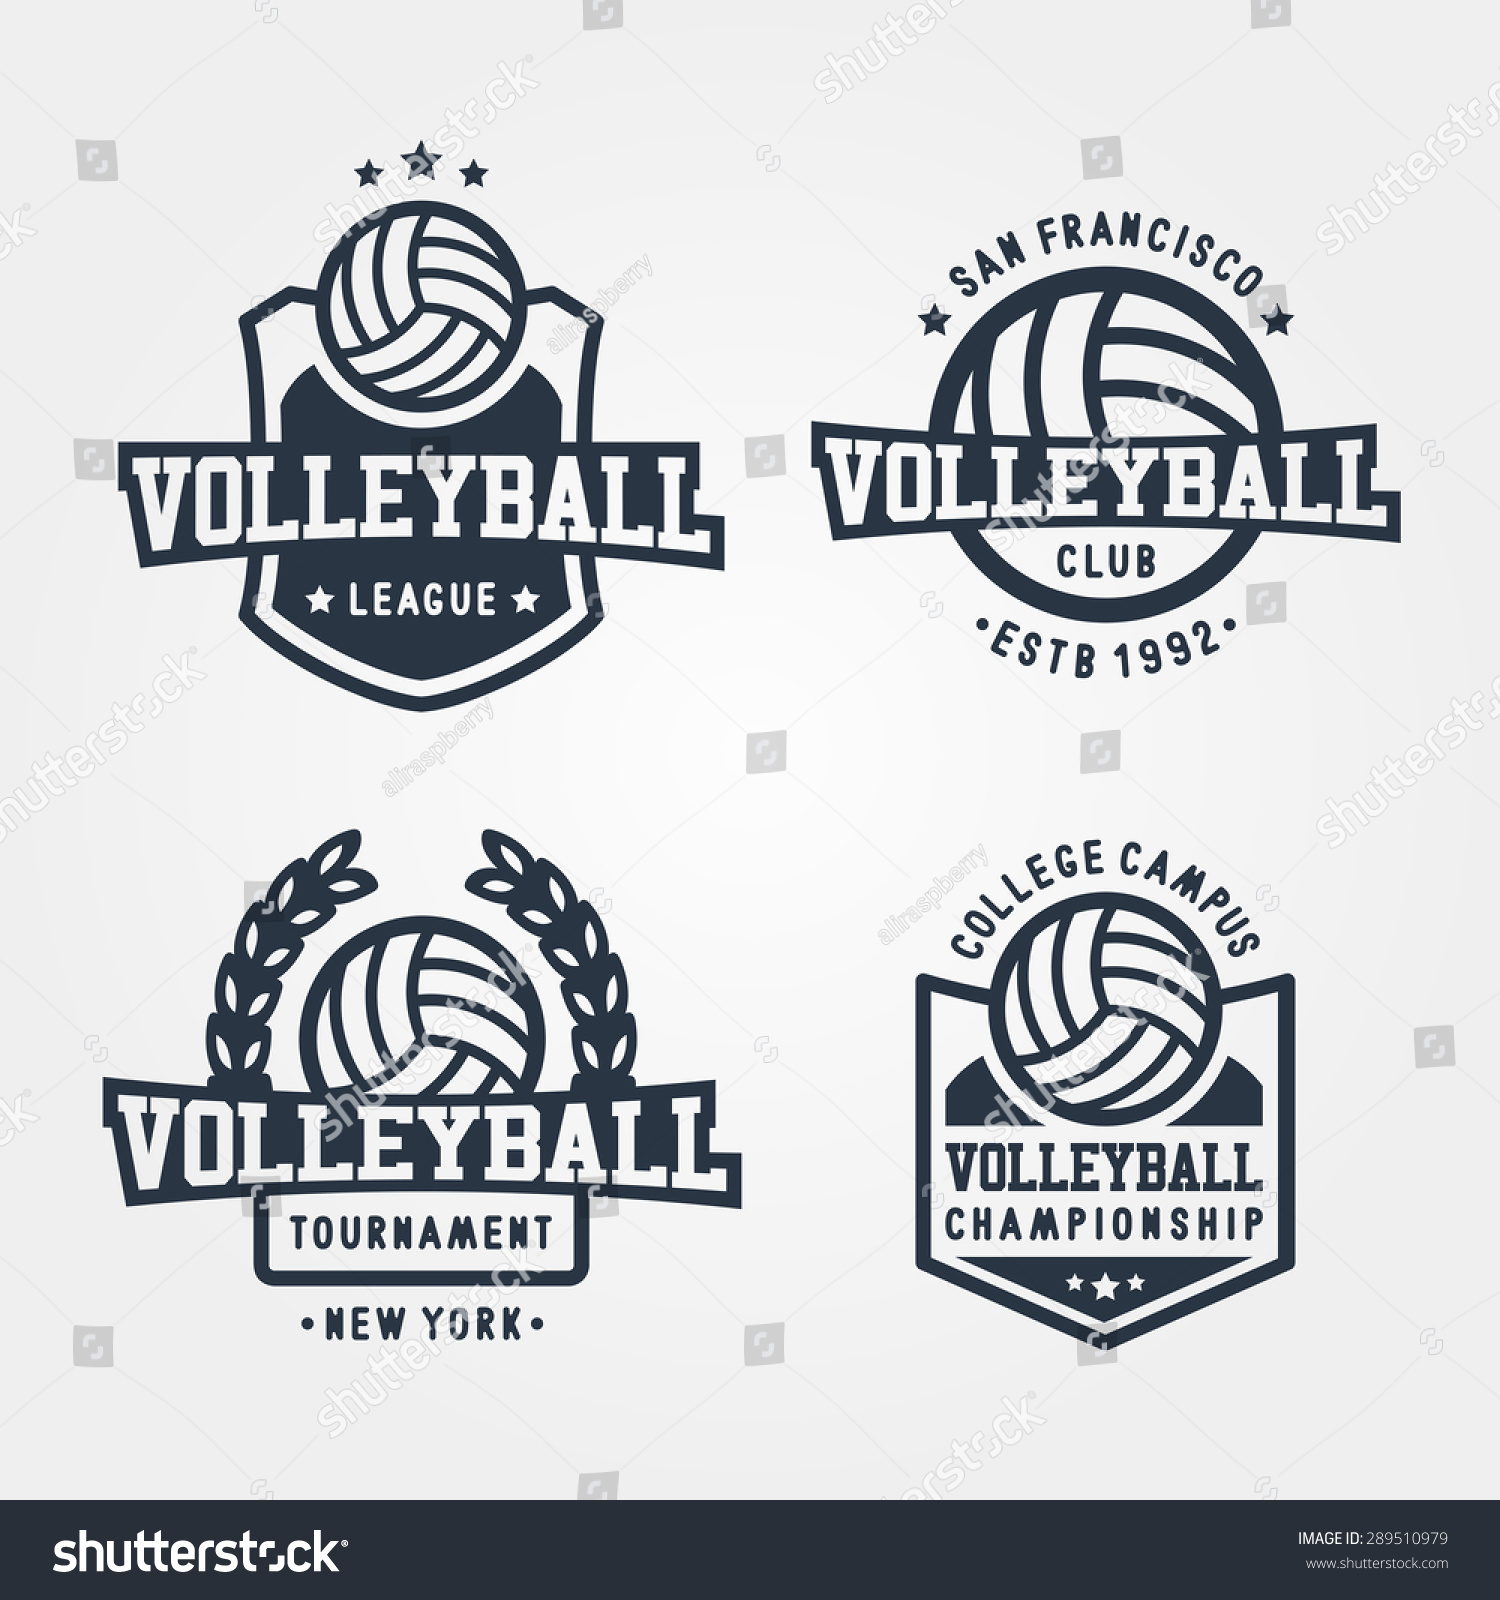 volleyball clipart for t shirts - photo #20